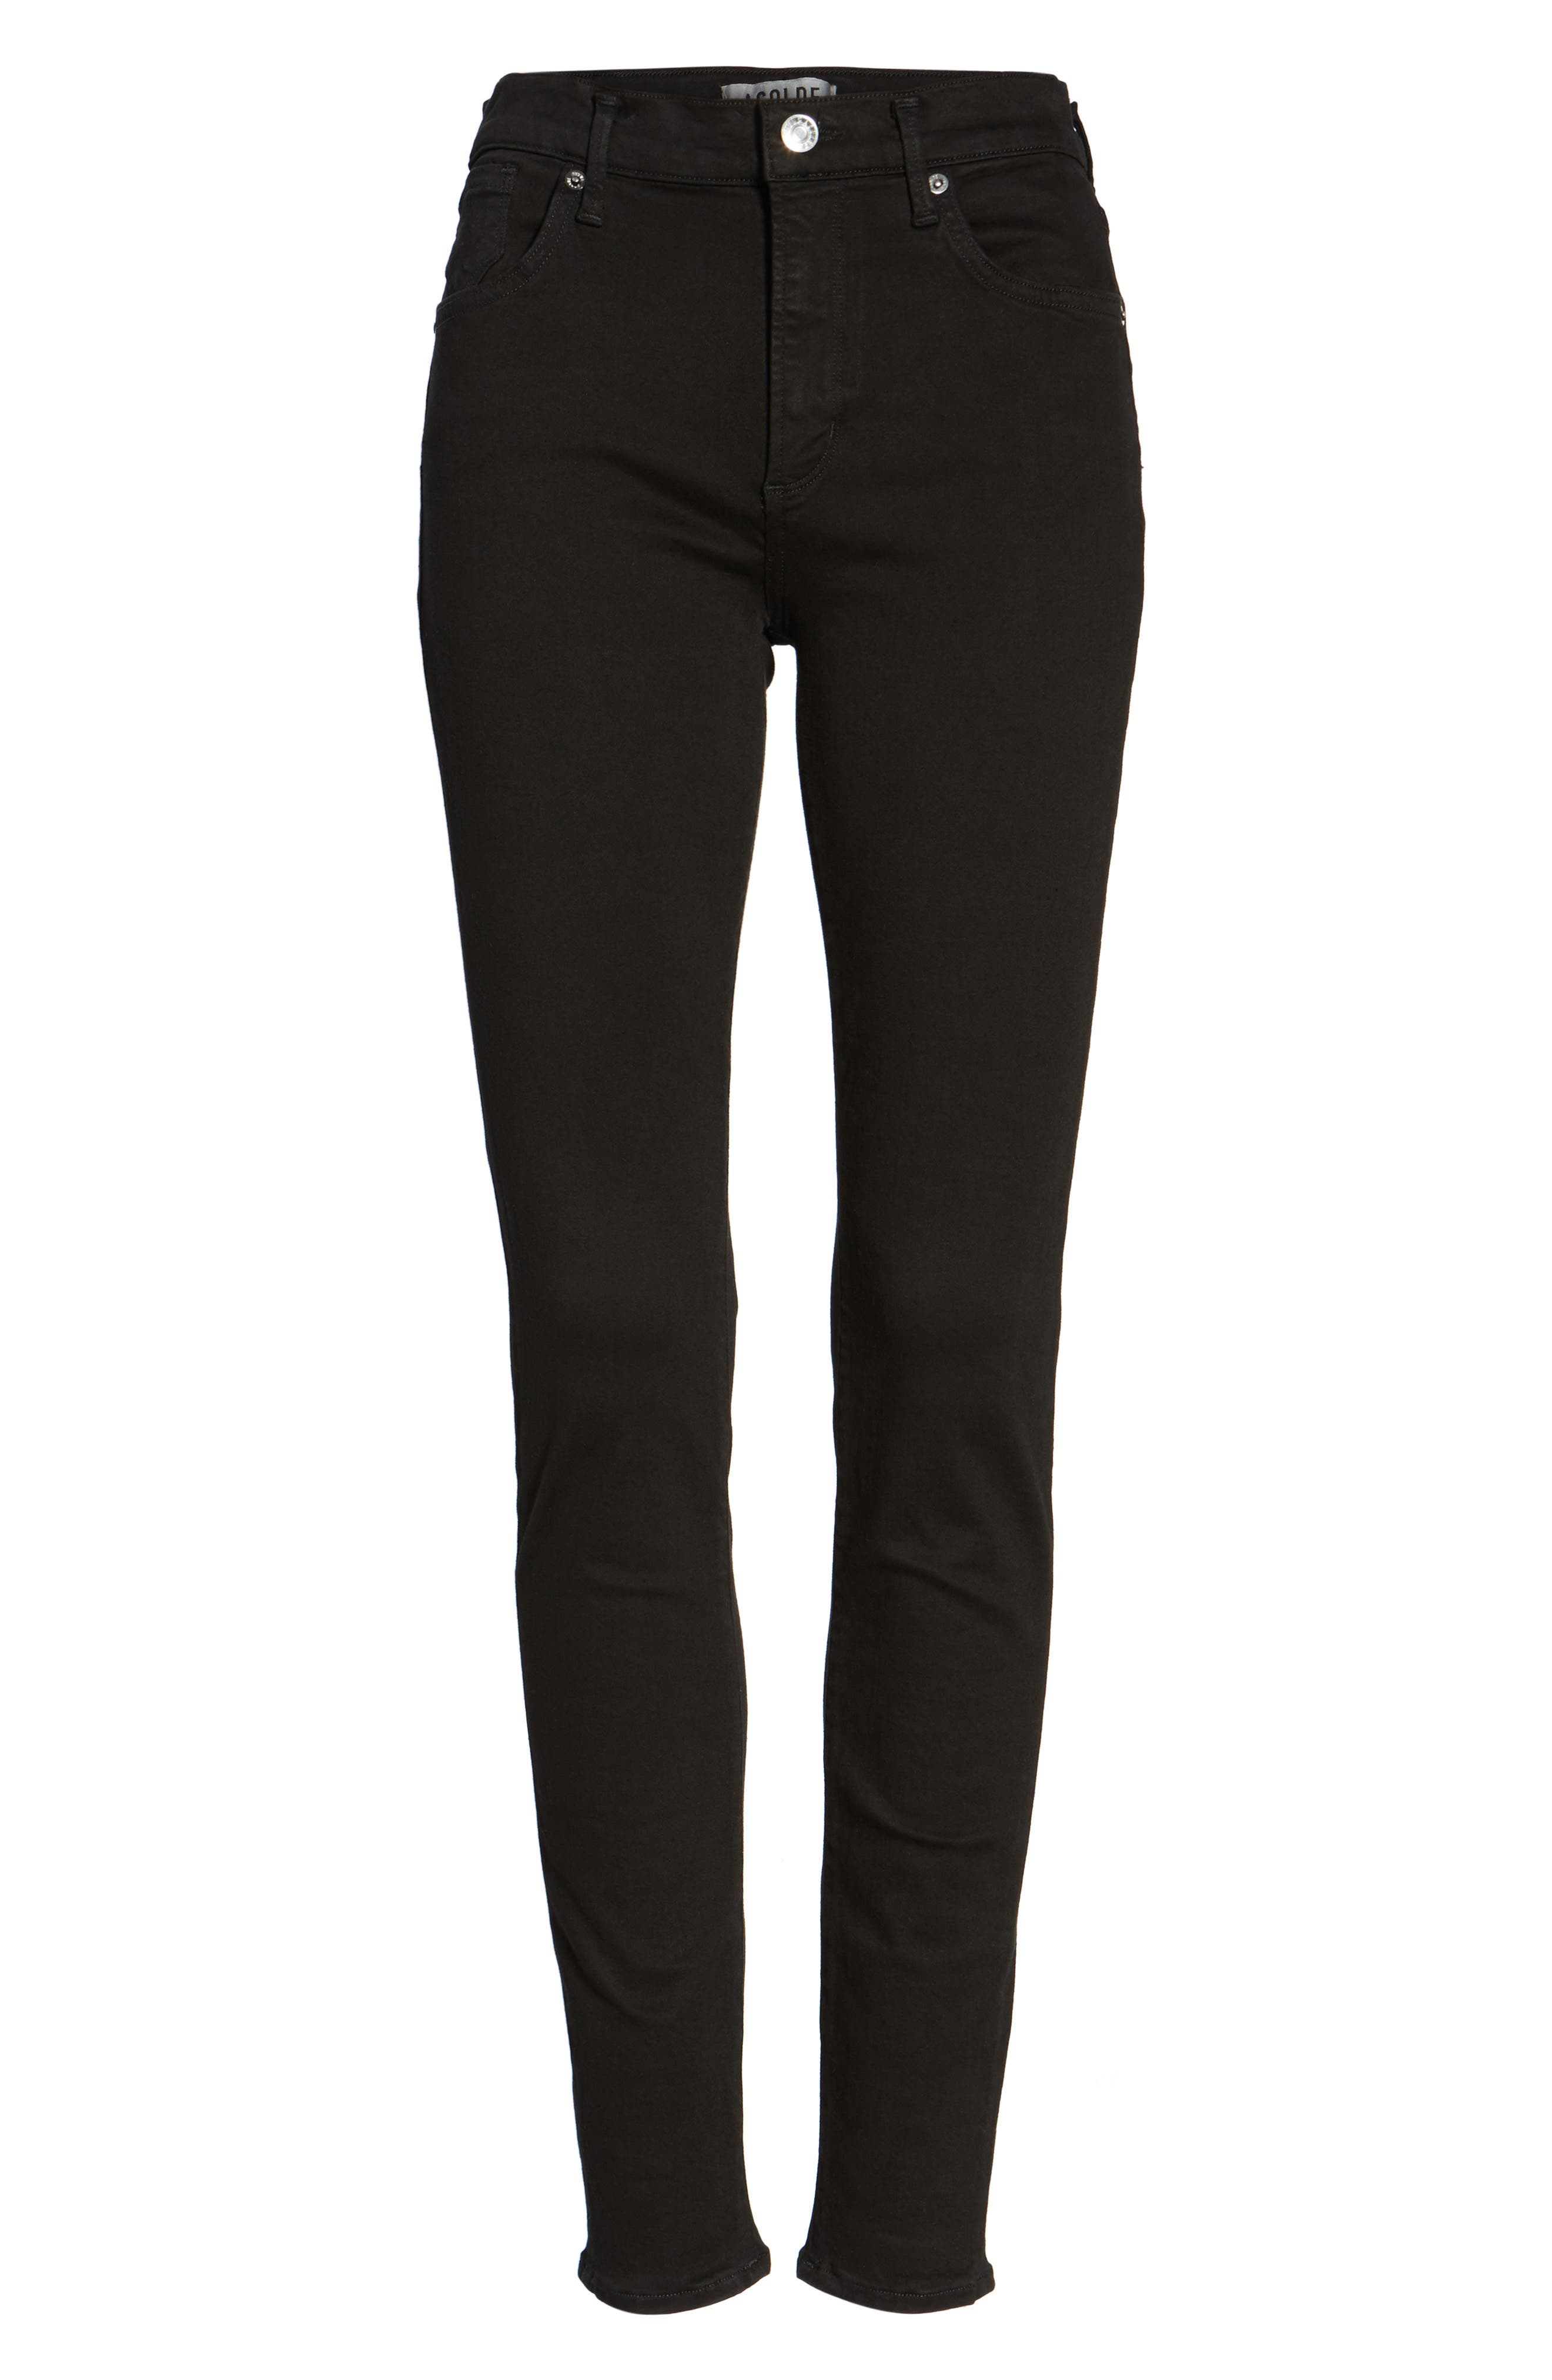 Sophie High Waist Skinny Jeans,                             Alternate thumbnail 6, color,                             002